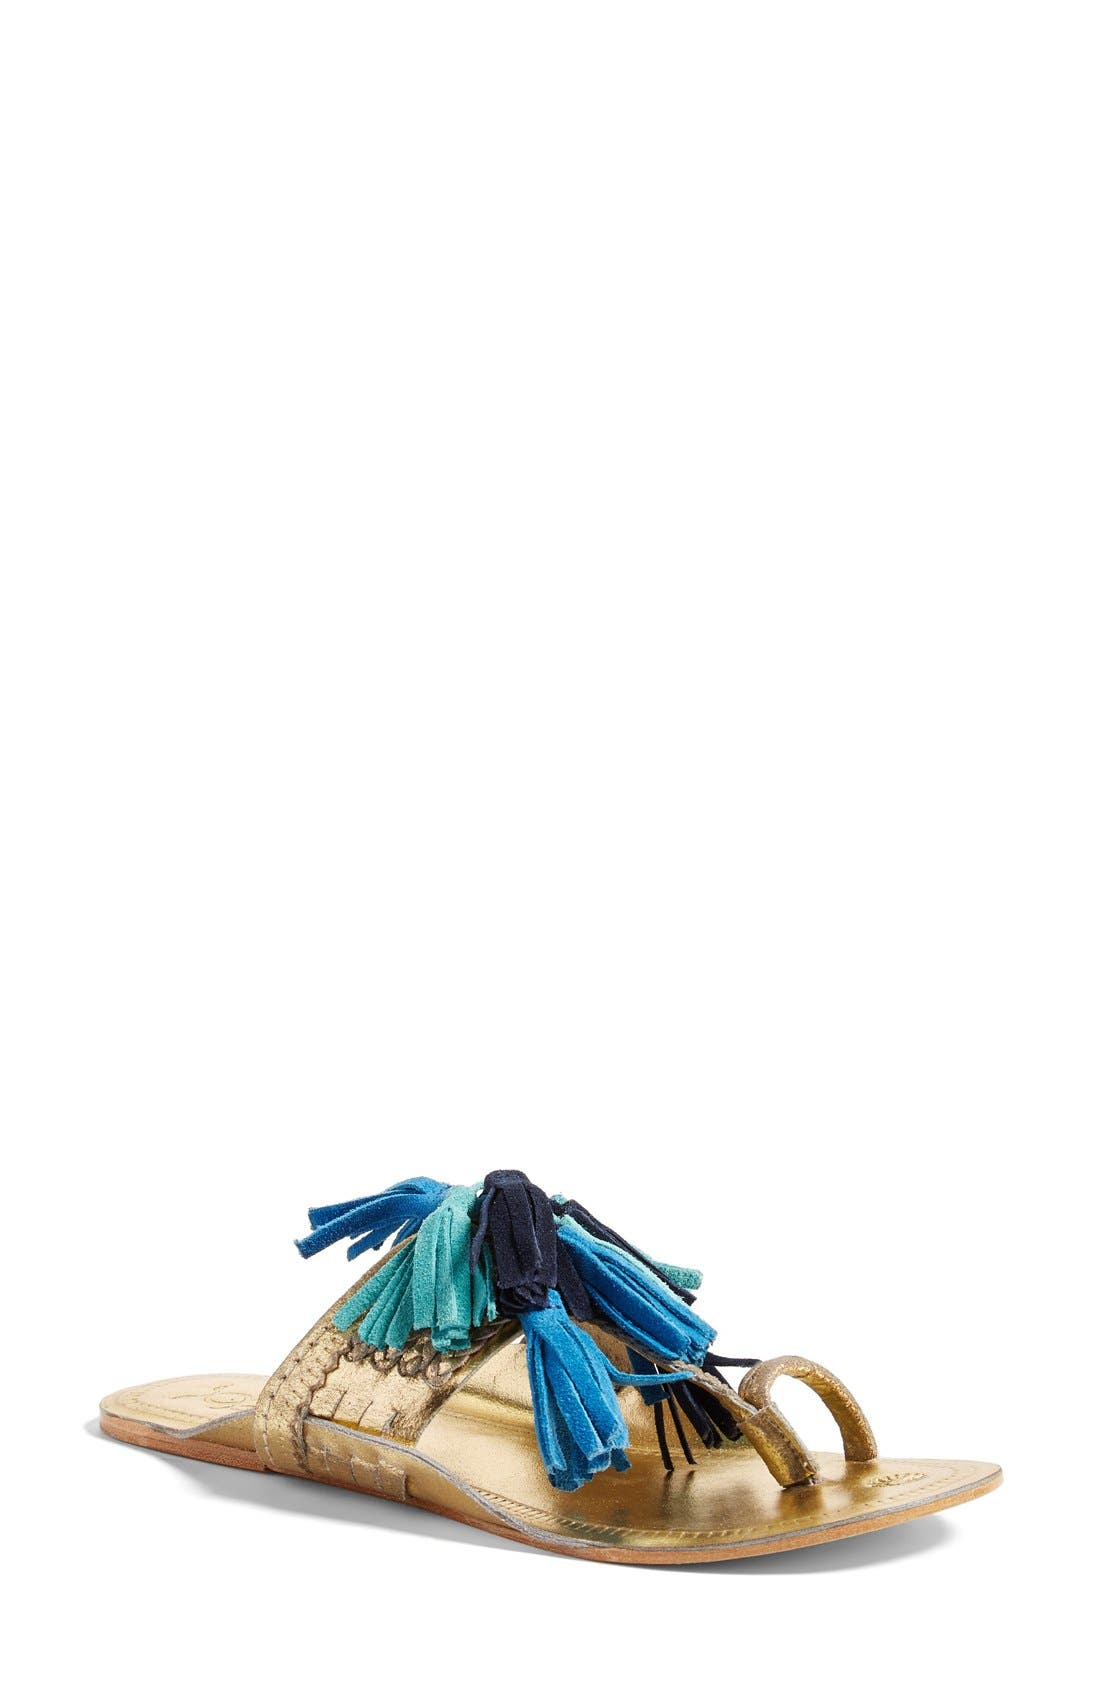 Alternate Image 1 Selected - Figue Scaramouch Tassel Sandal (Women)